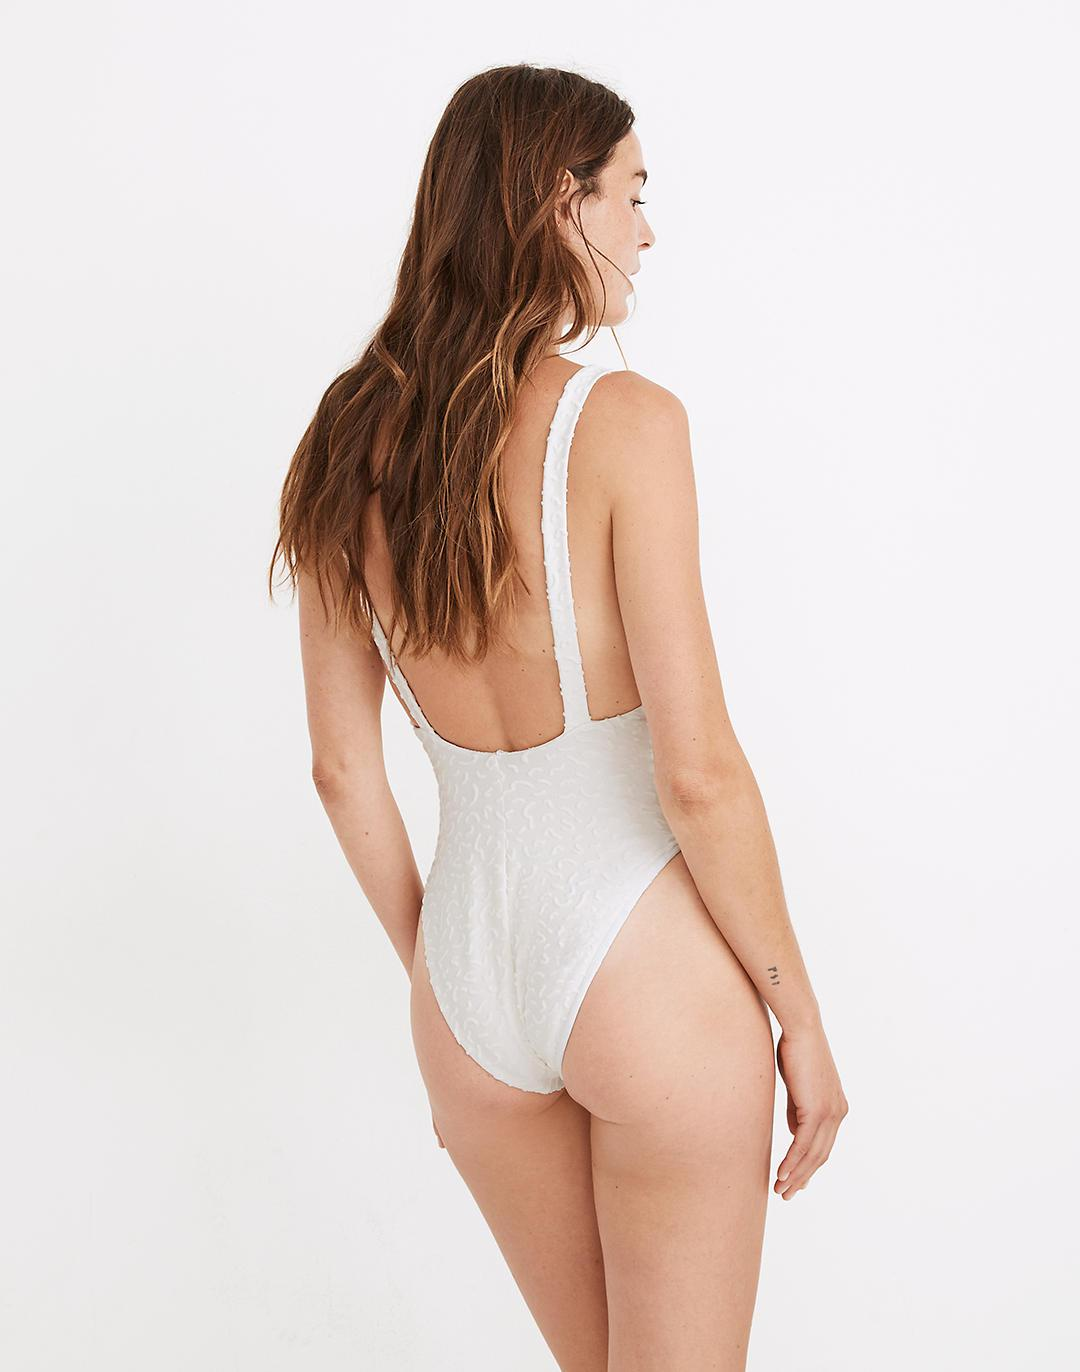 Madewell Maillot One-Piece Swimsuit in Bold Squiggles Jacquard 2